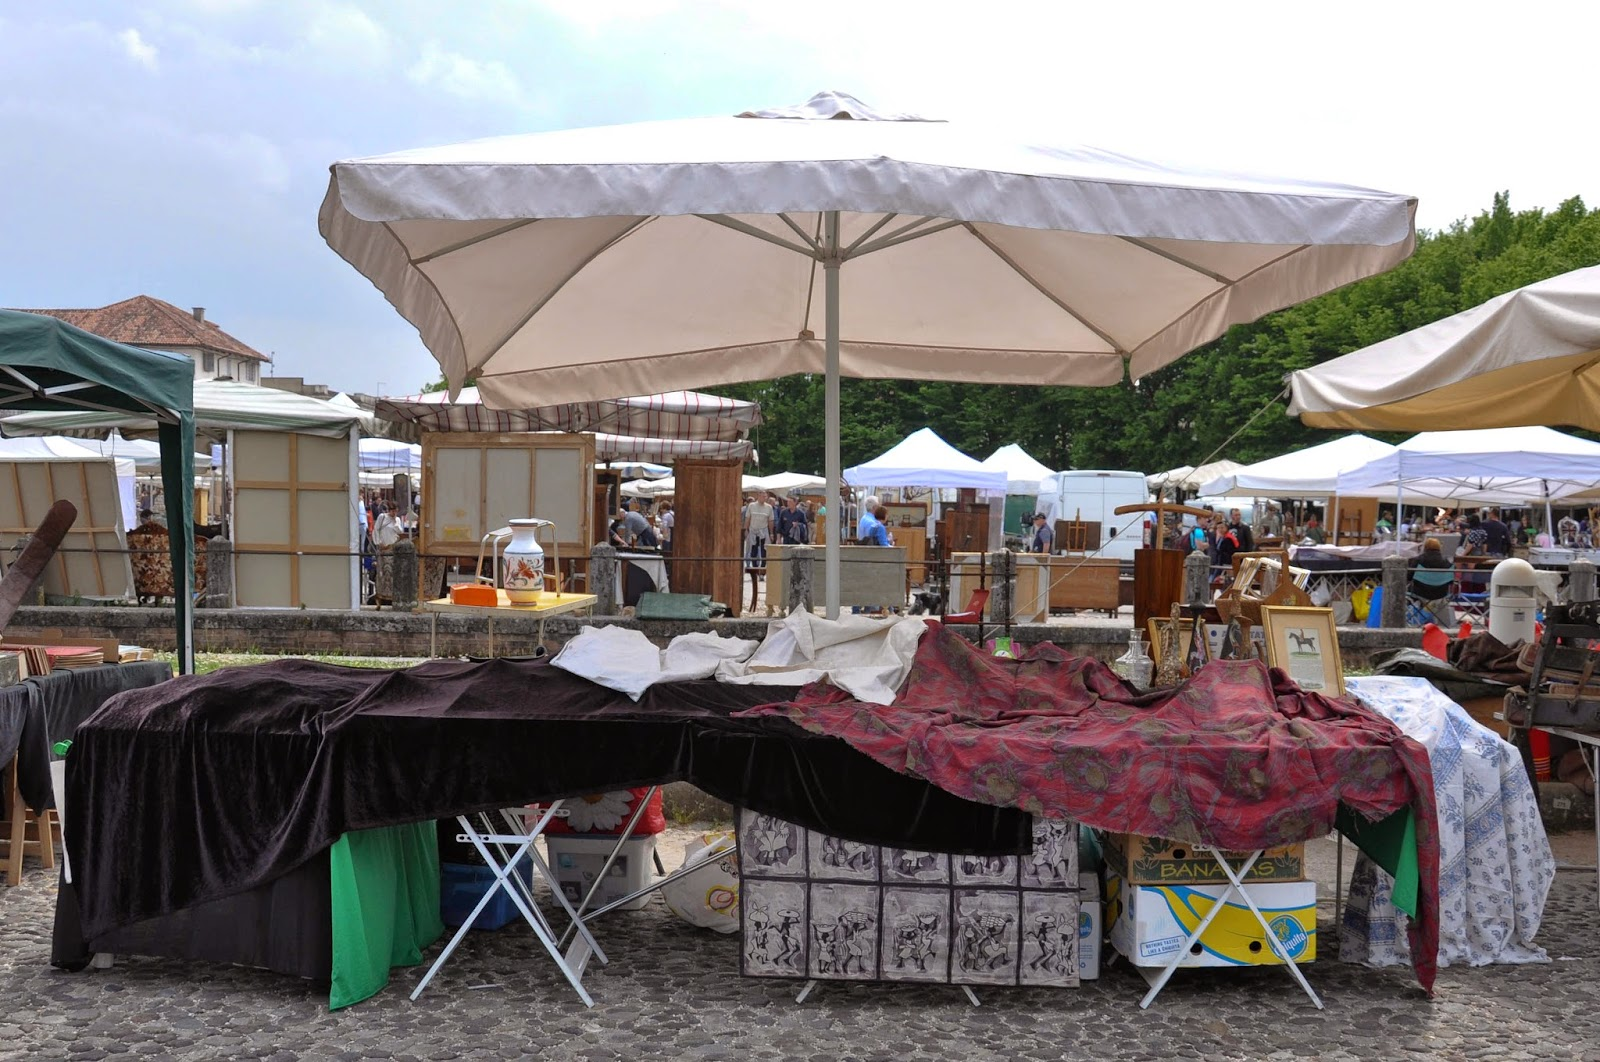 Stall closed for lunch break, Antiques market, Piazzola sul Brenta, Veneto, Italy